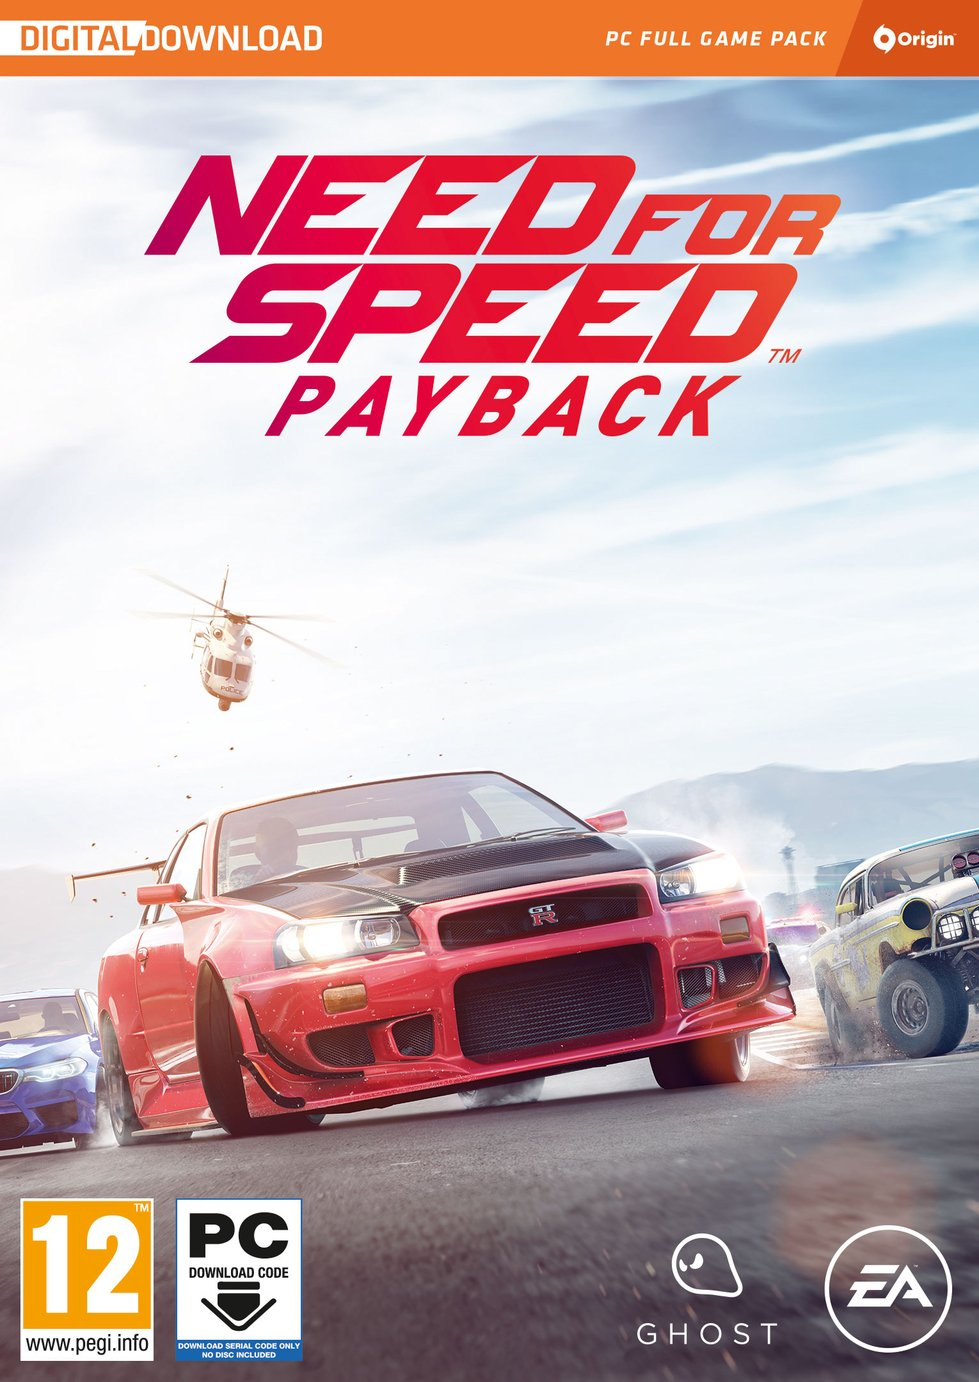 Need for Speed Payback PC Game Code in a Box